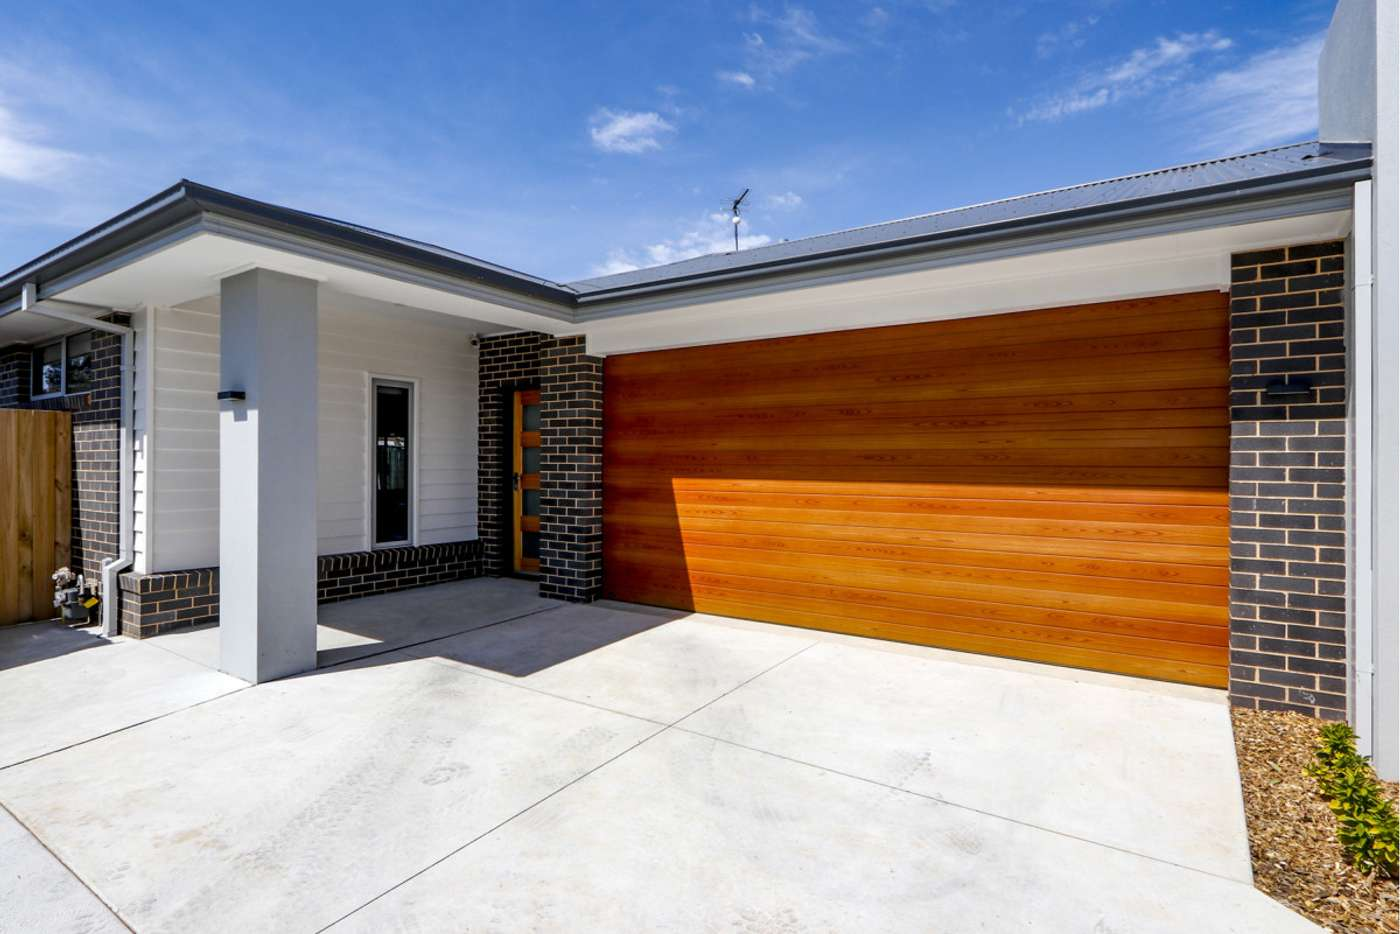 Main view of Homely townhouse listing, 4 Lapwing Lane, Sale VIC 3850